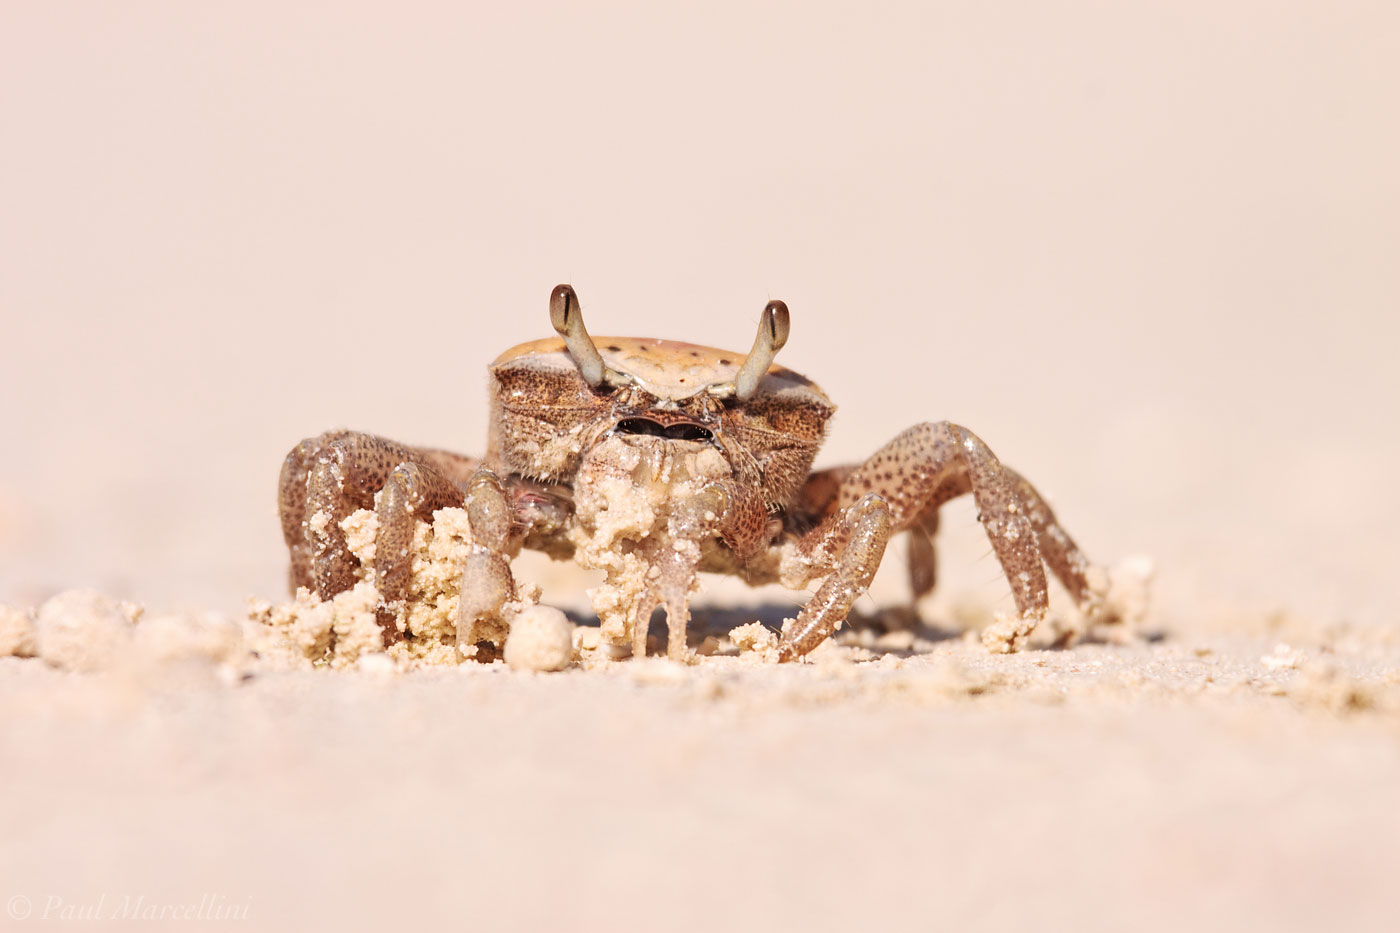 uca, fiddler crab, photo